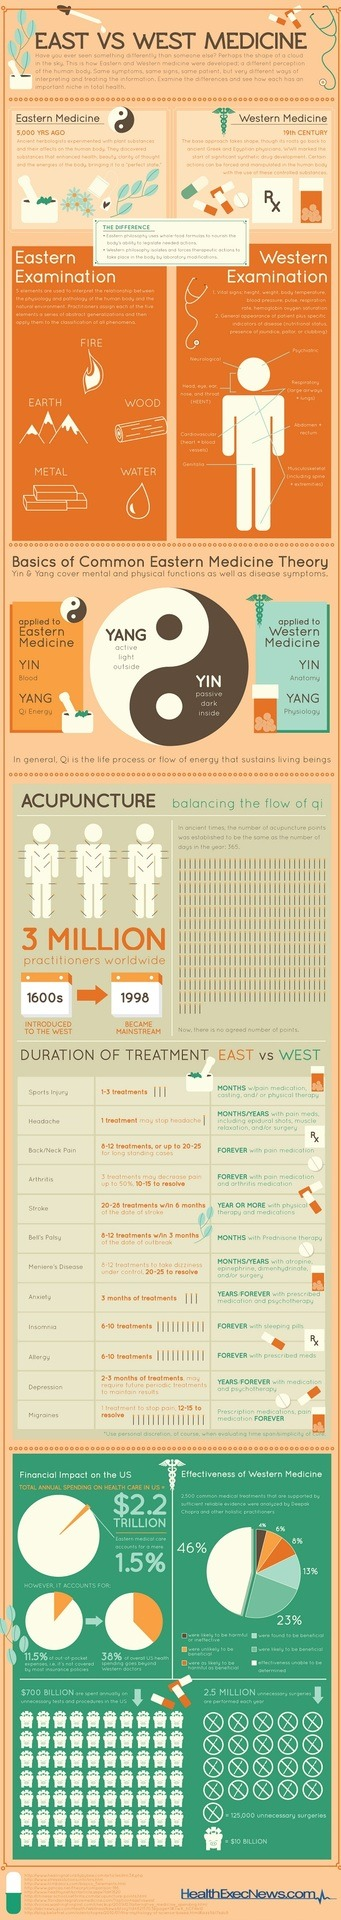 Check out some of the differences between Eastern and Western medicine and how they can integrate and complement each other.